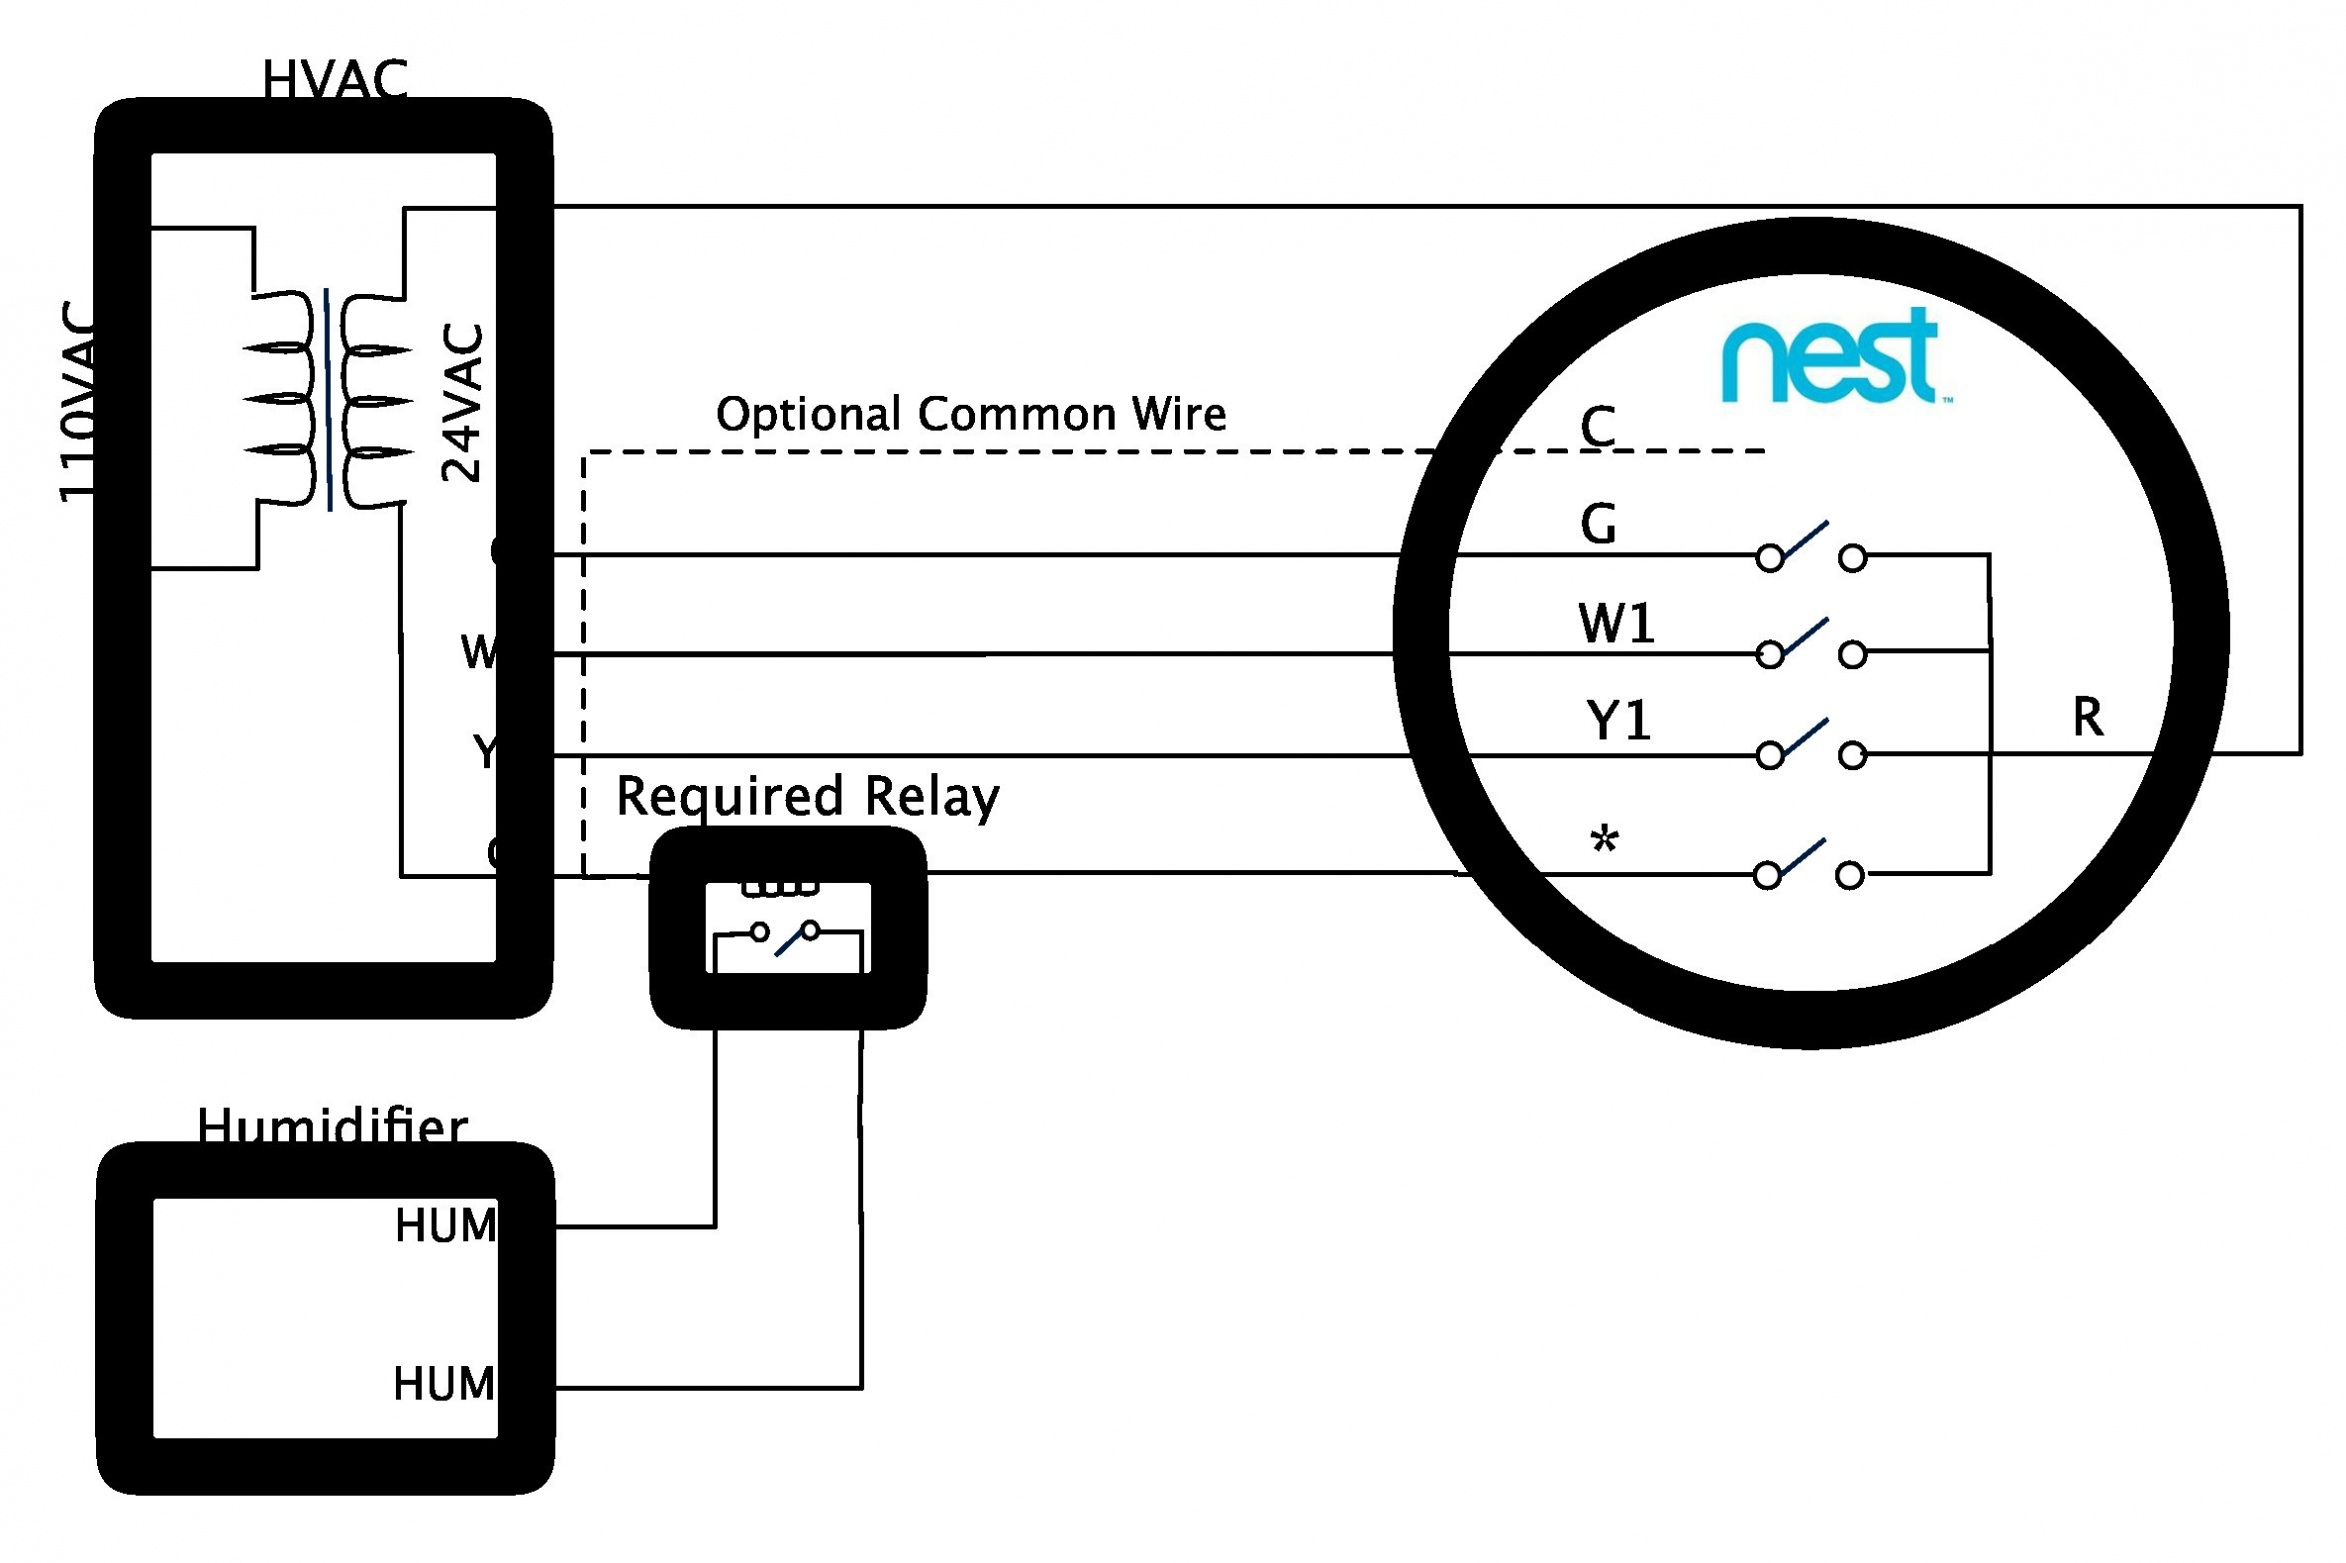 Nest Wireless Thermostat Wiring Diagram Best Wiring Diagram – Nest - Nest Wireless Wiring Diagram